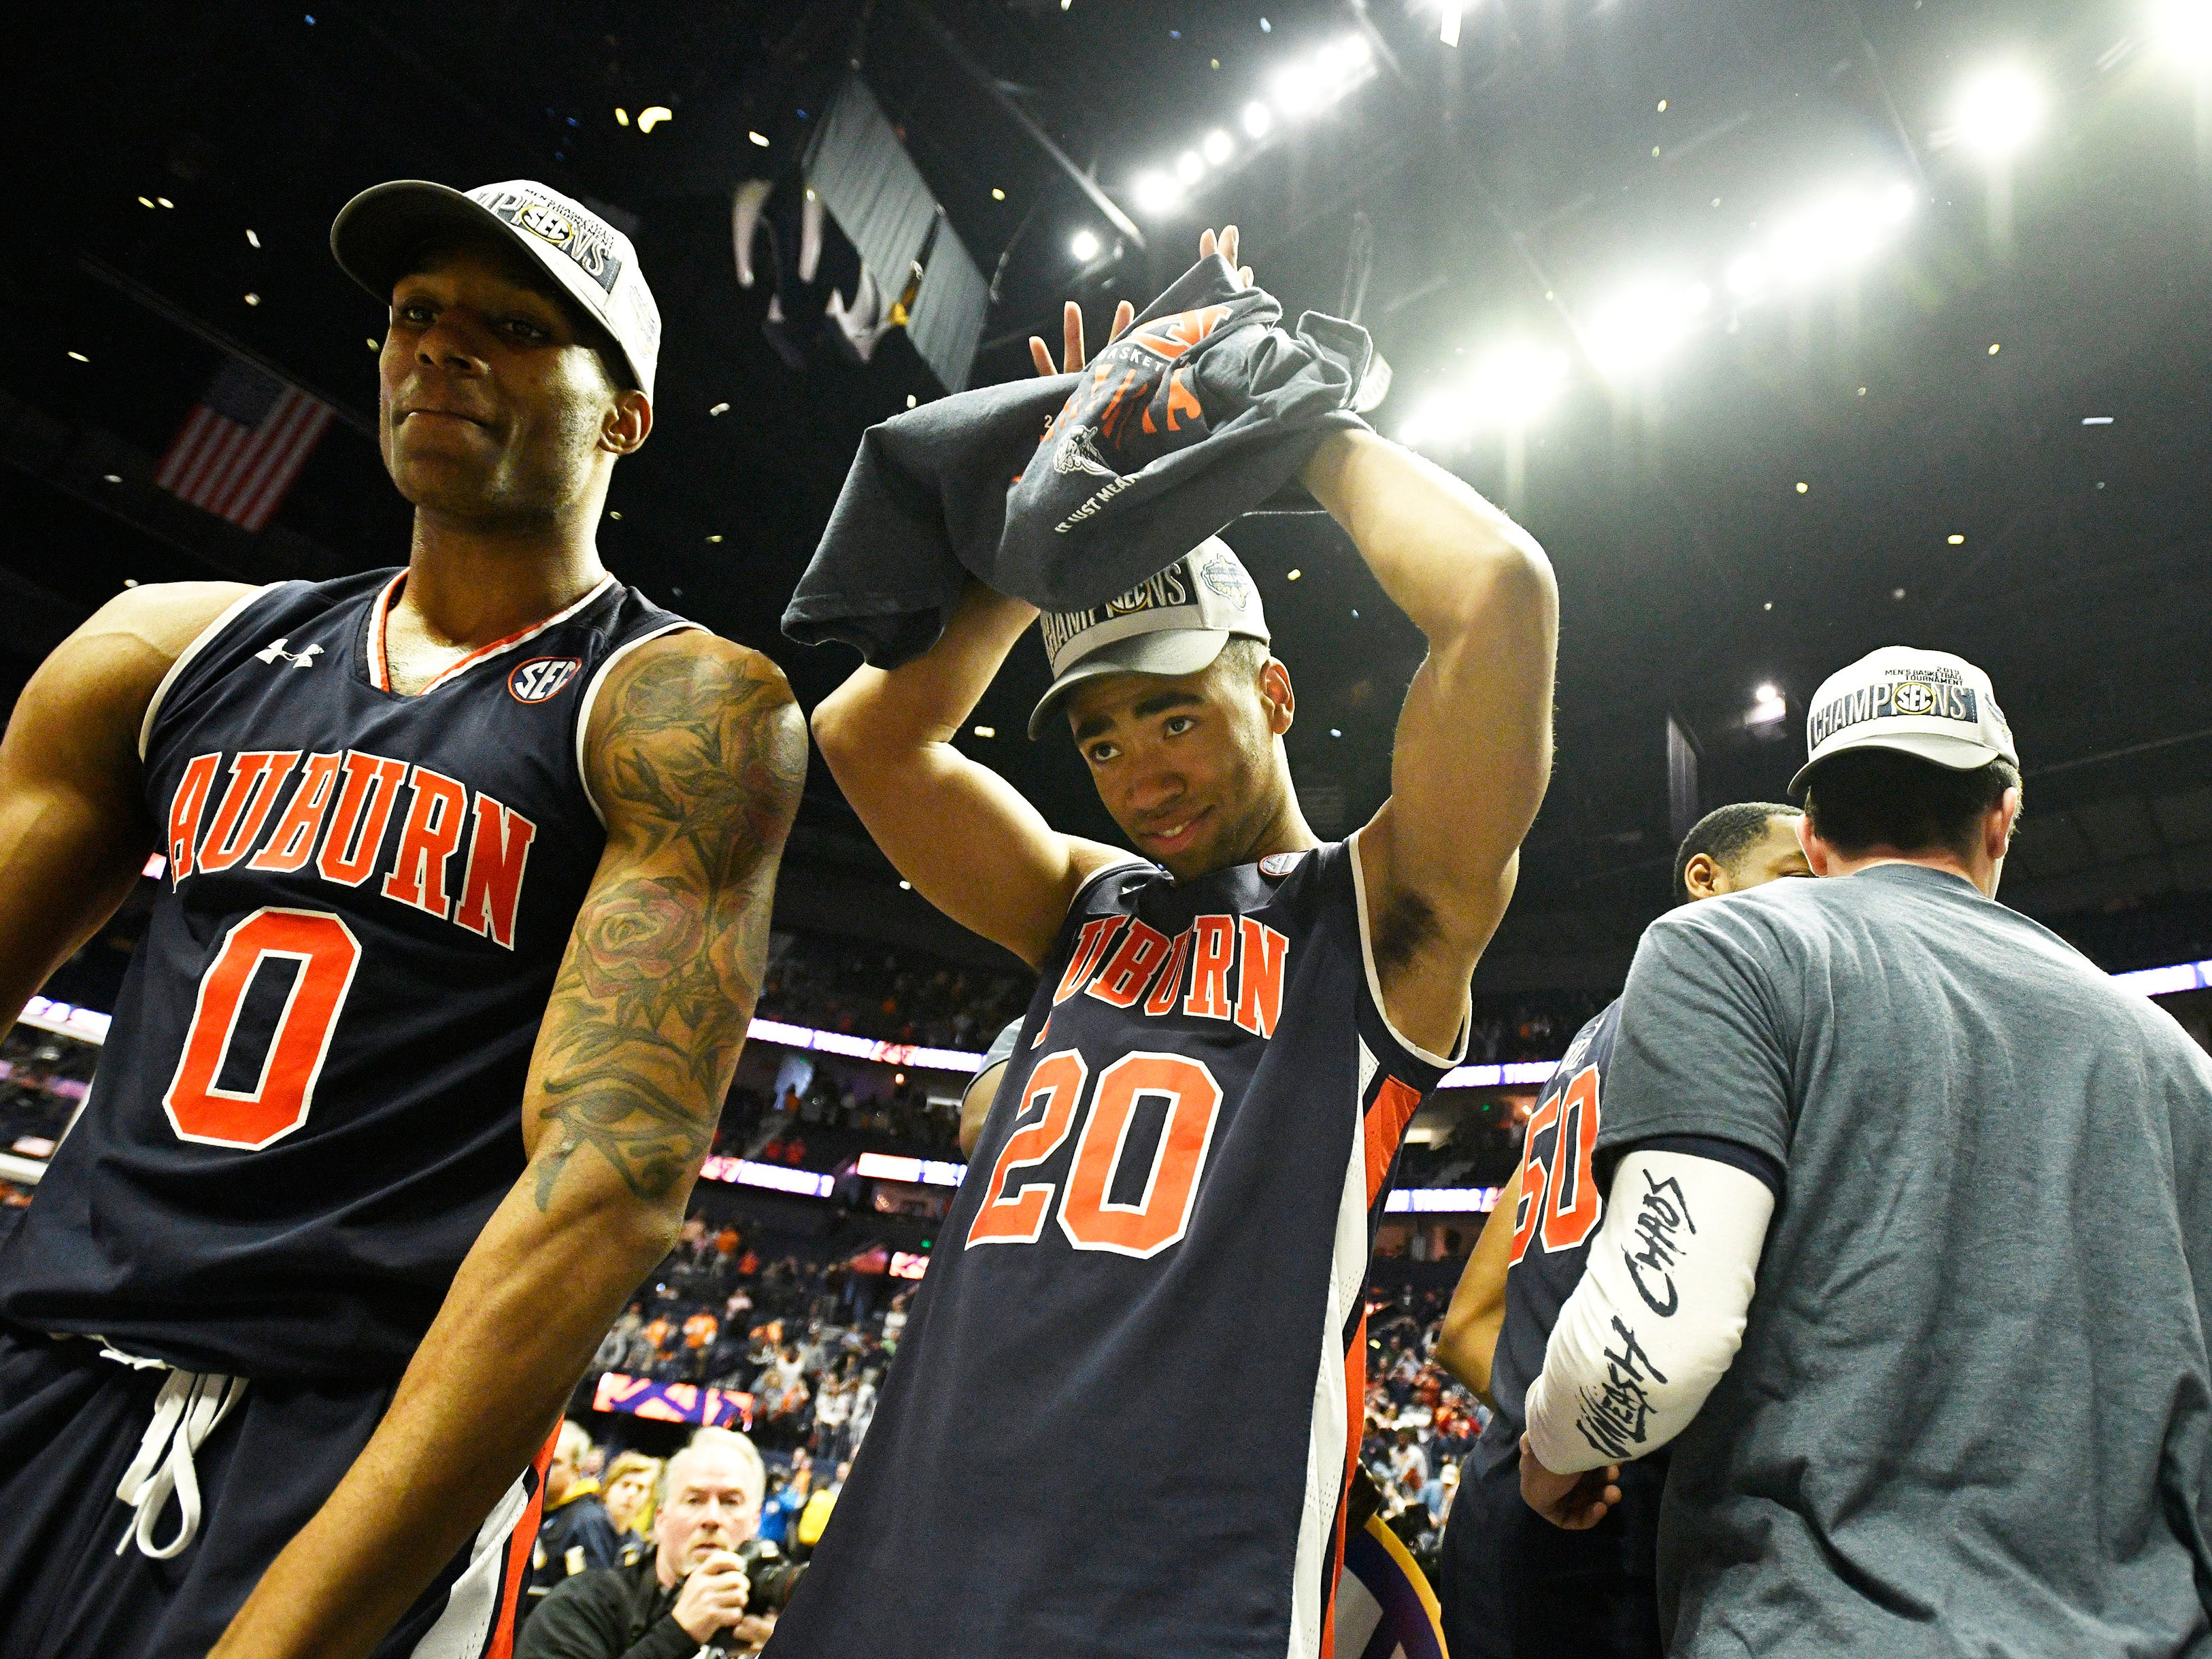 Auburn forward Myles Parker (20) puts on his championship t-shirt after the team defeated Tennessee in the SEC Men's Basketball Tournament championship game at Bridgestone Arena in Nashville, Tenn., Sunday, March 17, 2019.